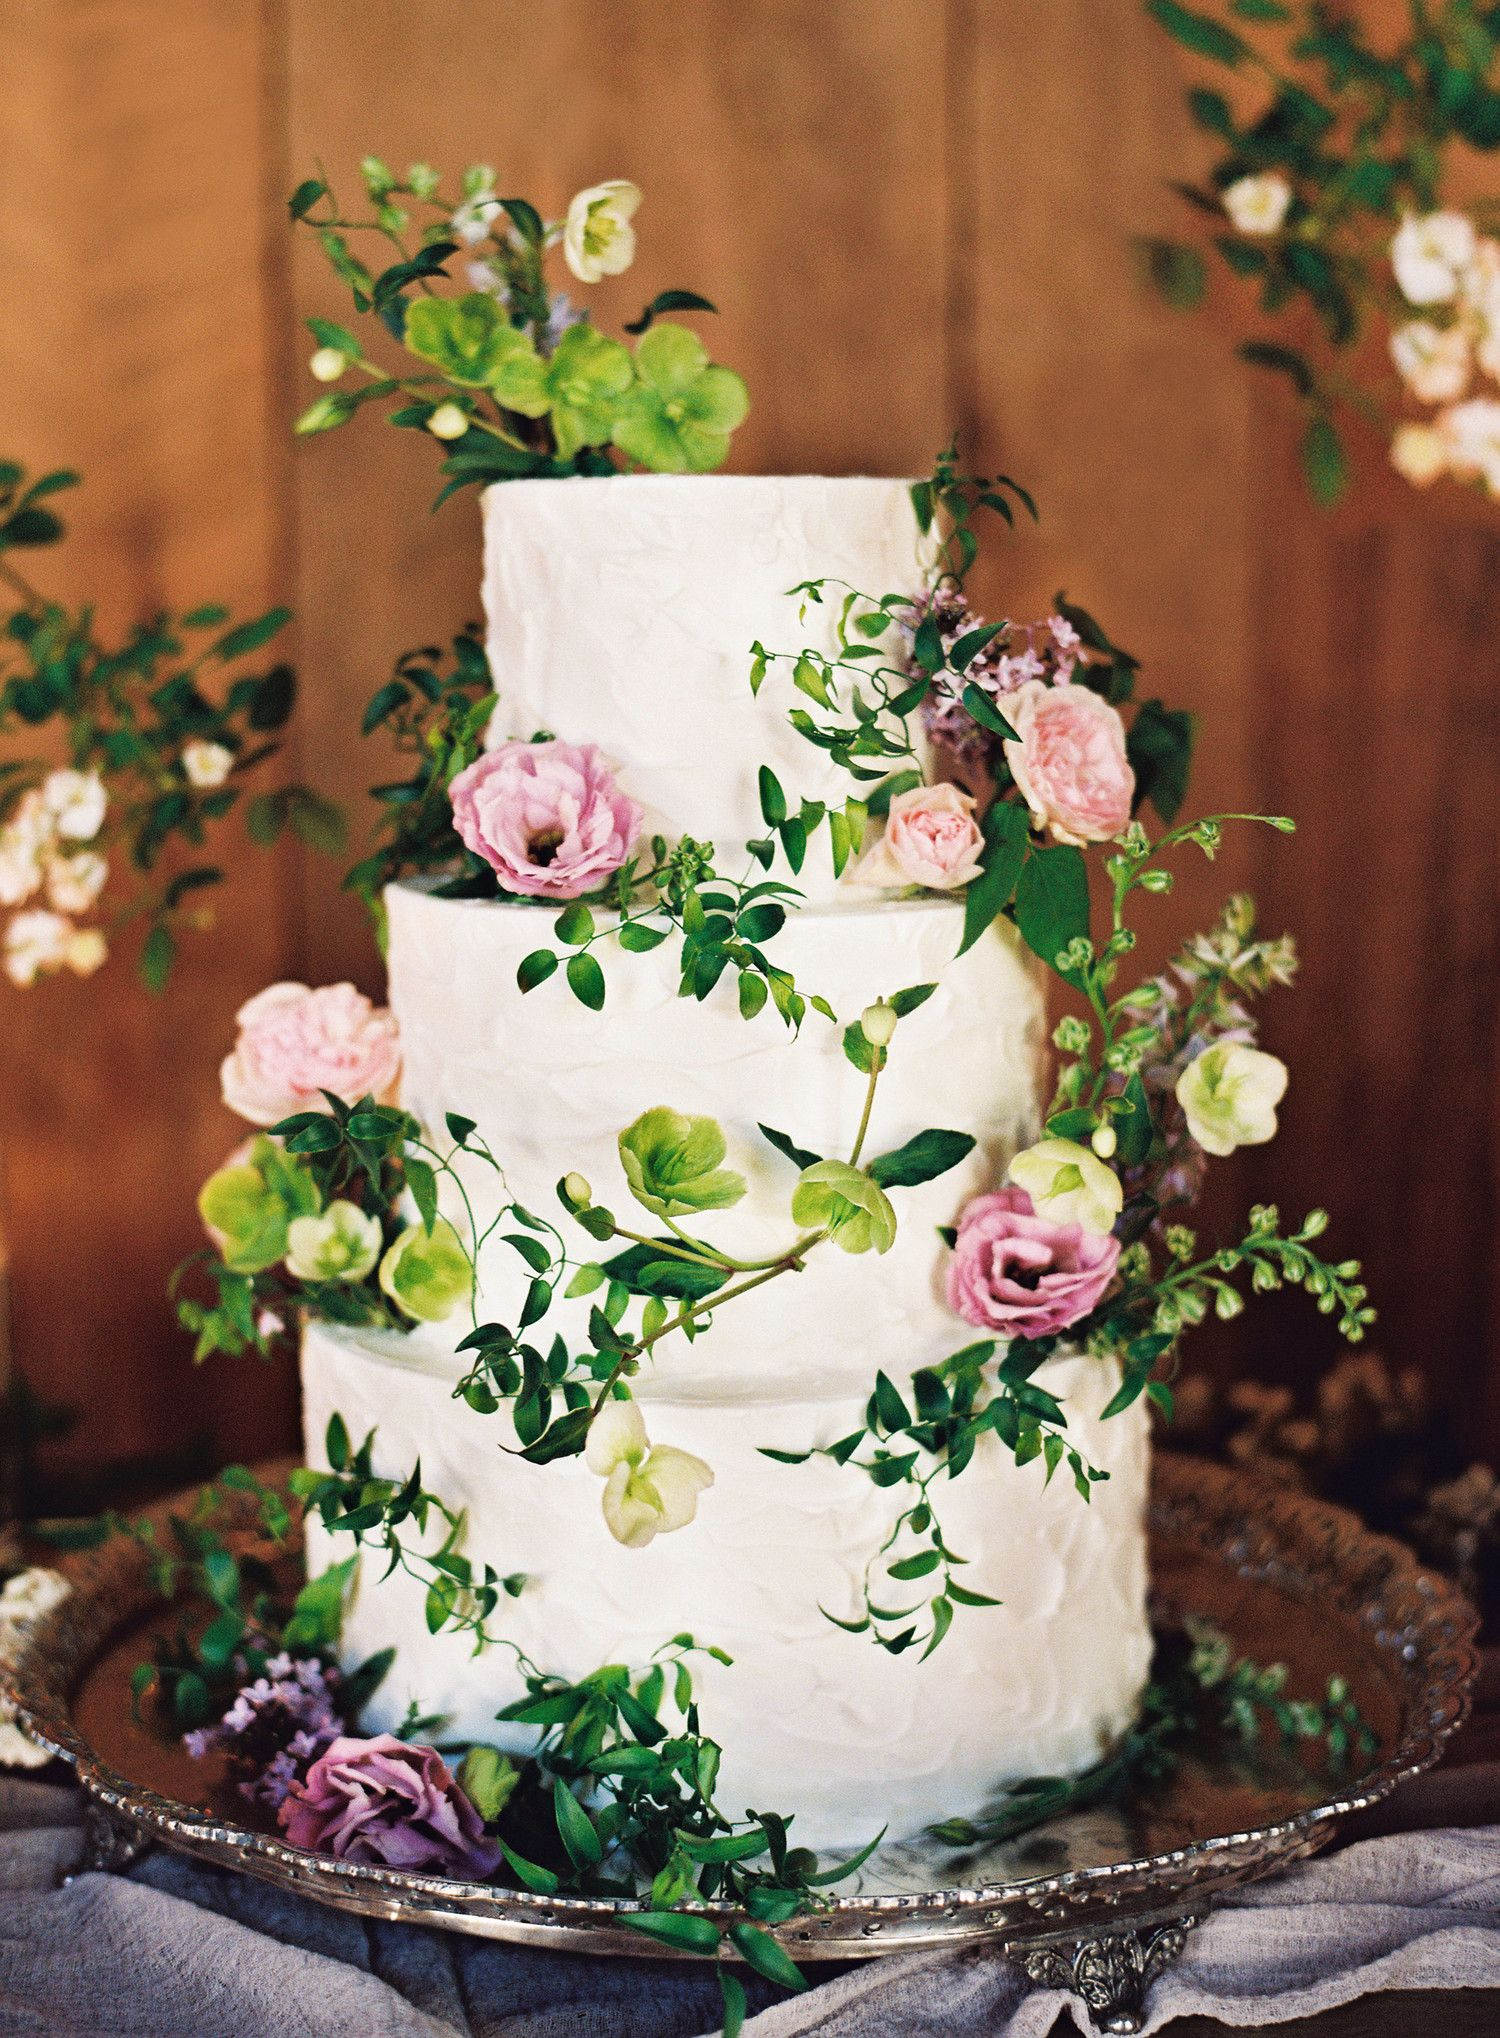 44 Wedding Cakes with Fresh Flowers   Wedding cakes with ...